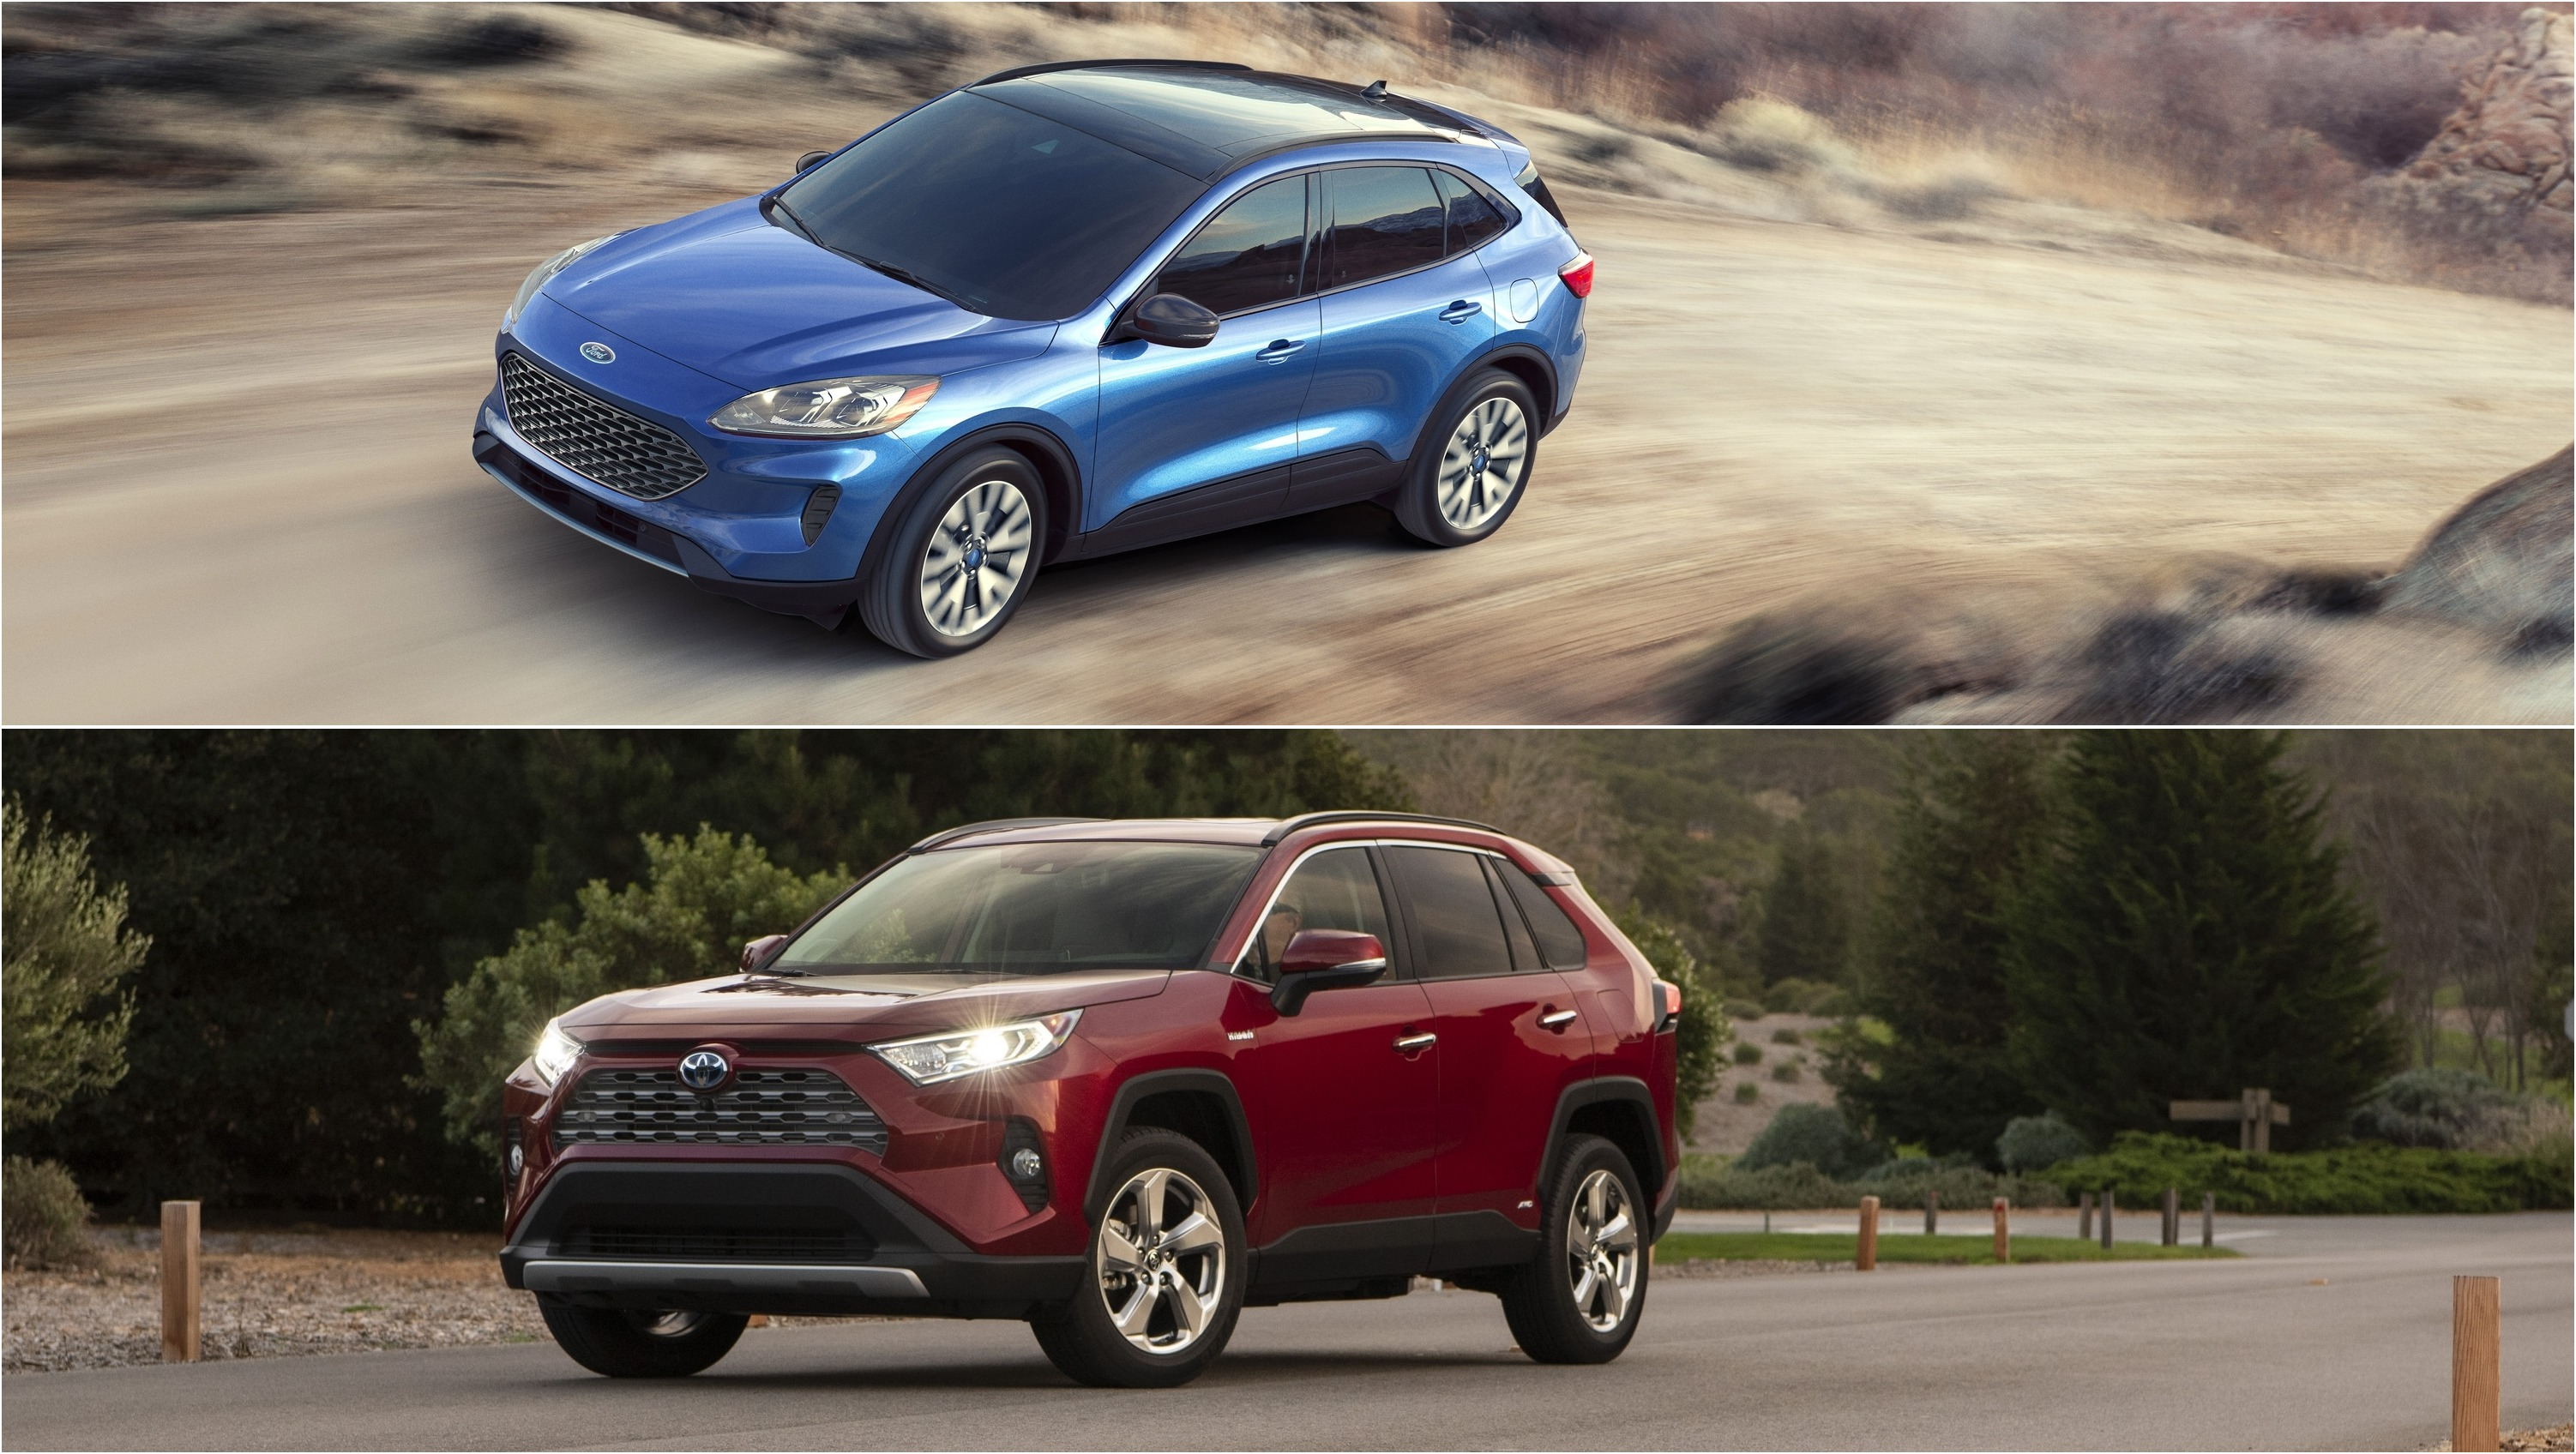 2020 ford escape  kuga  vs 2020 toyota rav4 pictures  photos  wallpapers